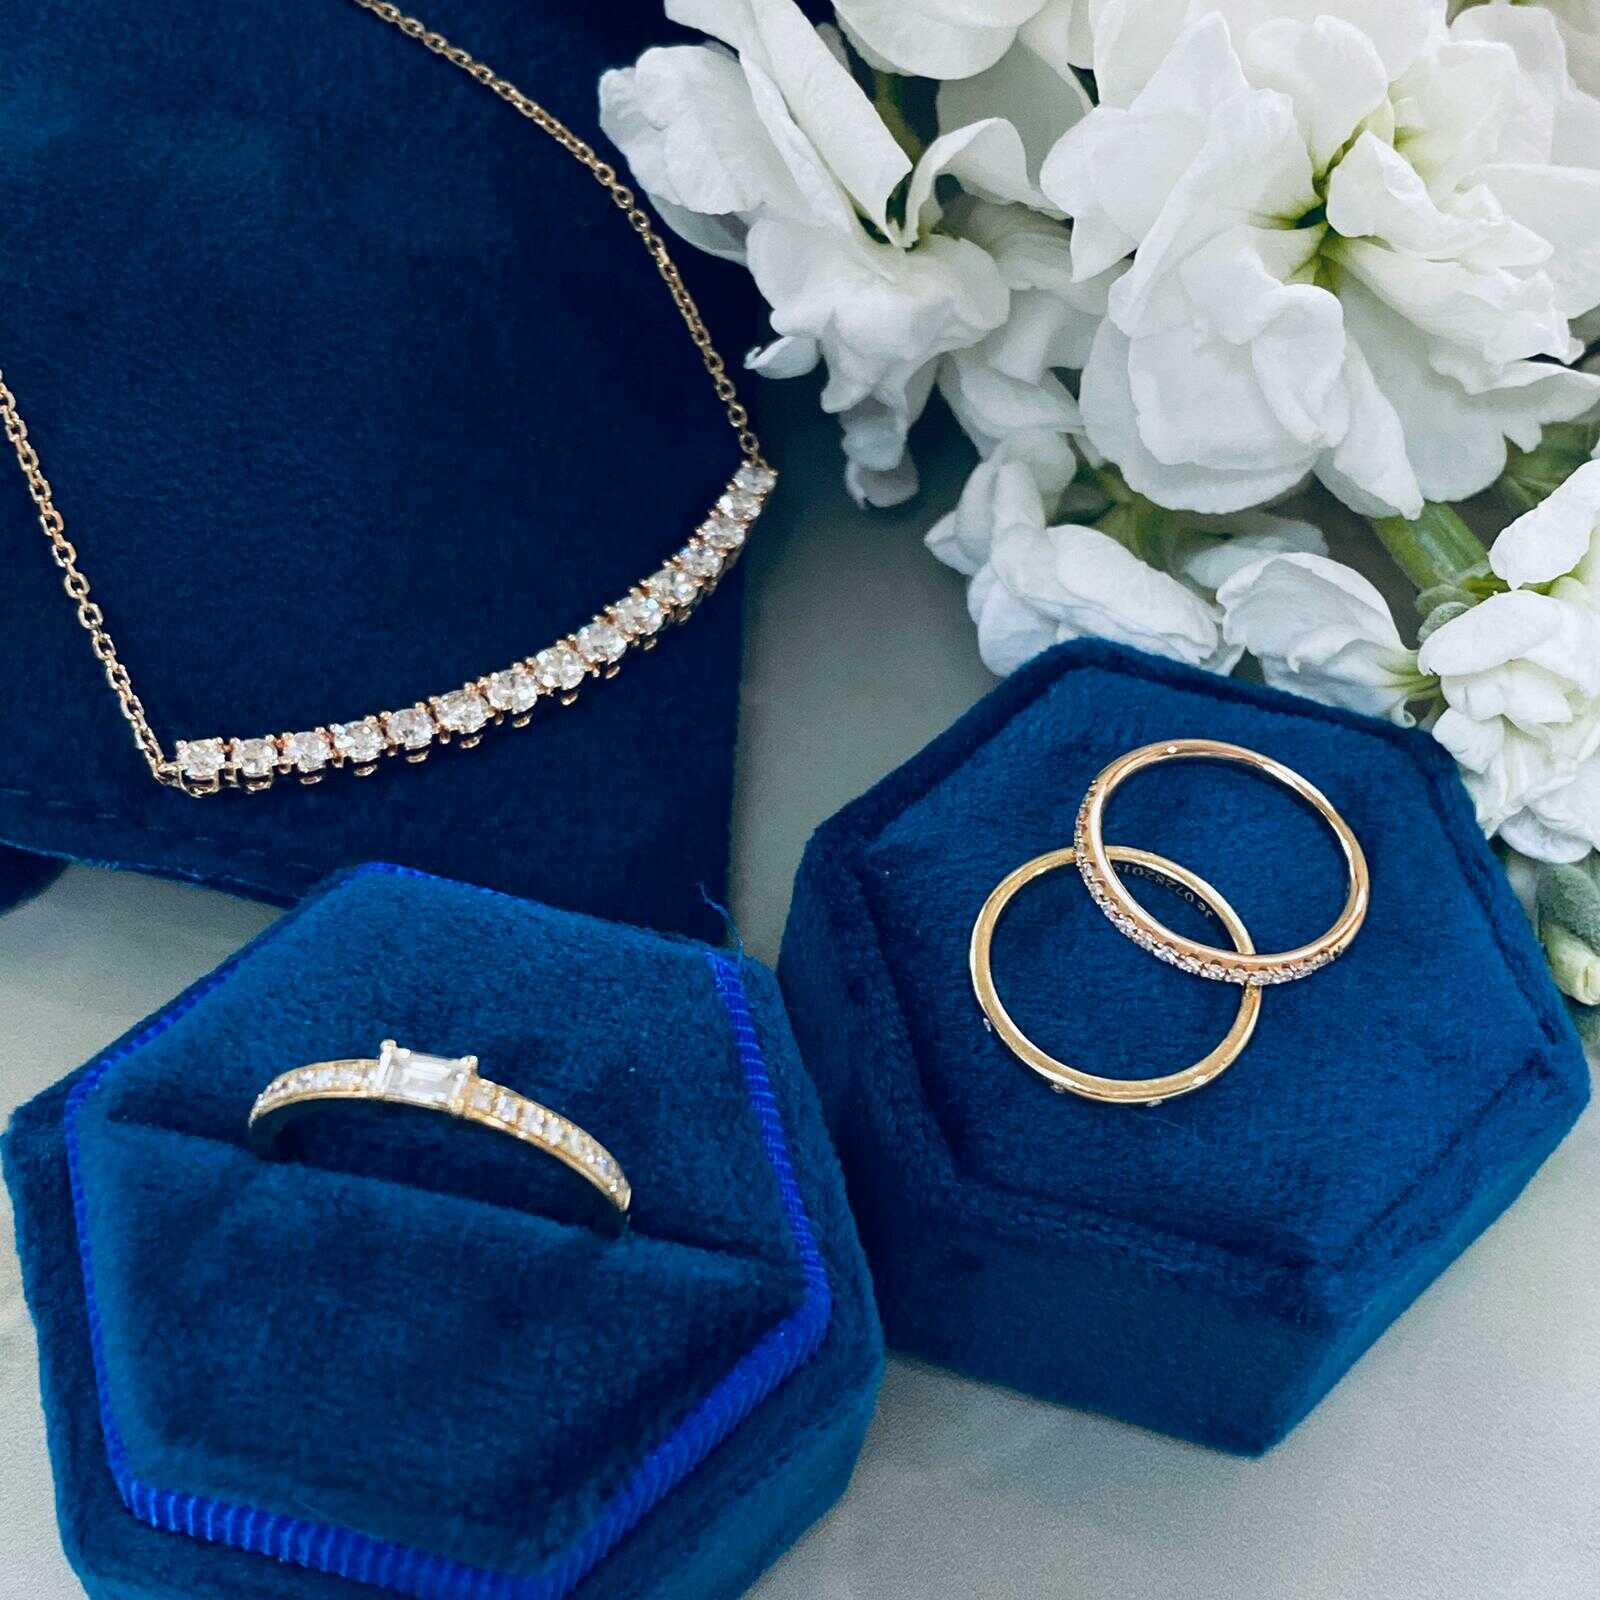 How Much to Spend on a Wedding Ring